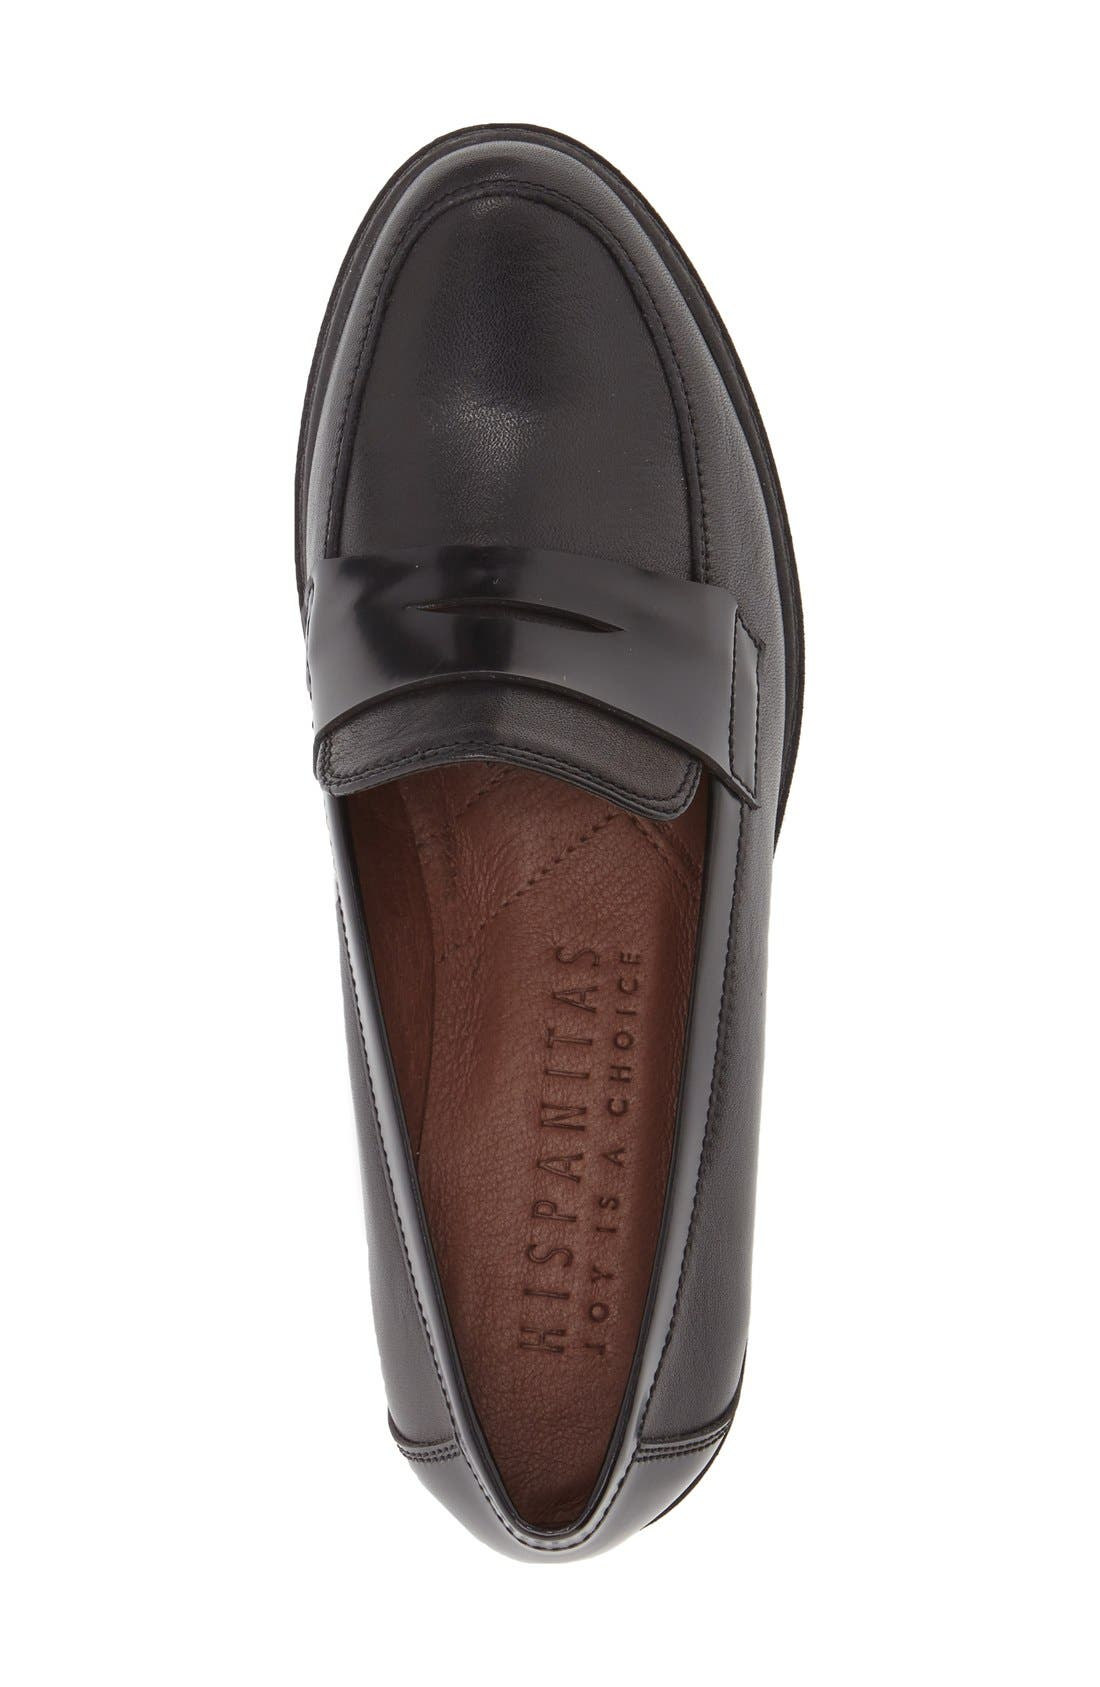 Alternate Image 3  - Hispanitas 'Acacia' Wedge Loafer (Women)